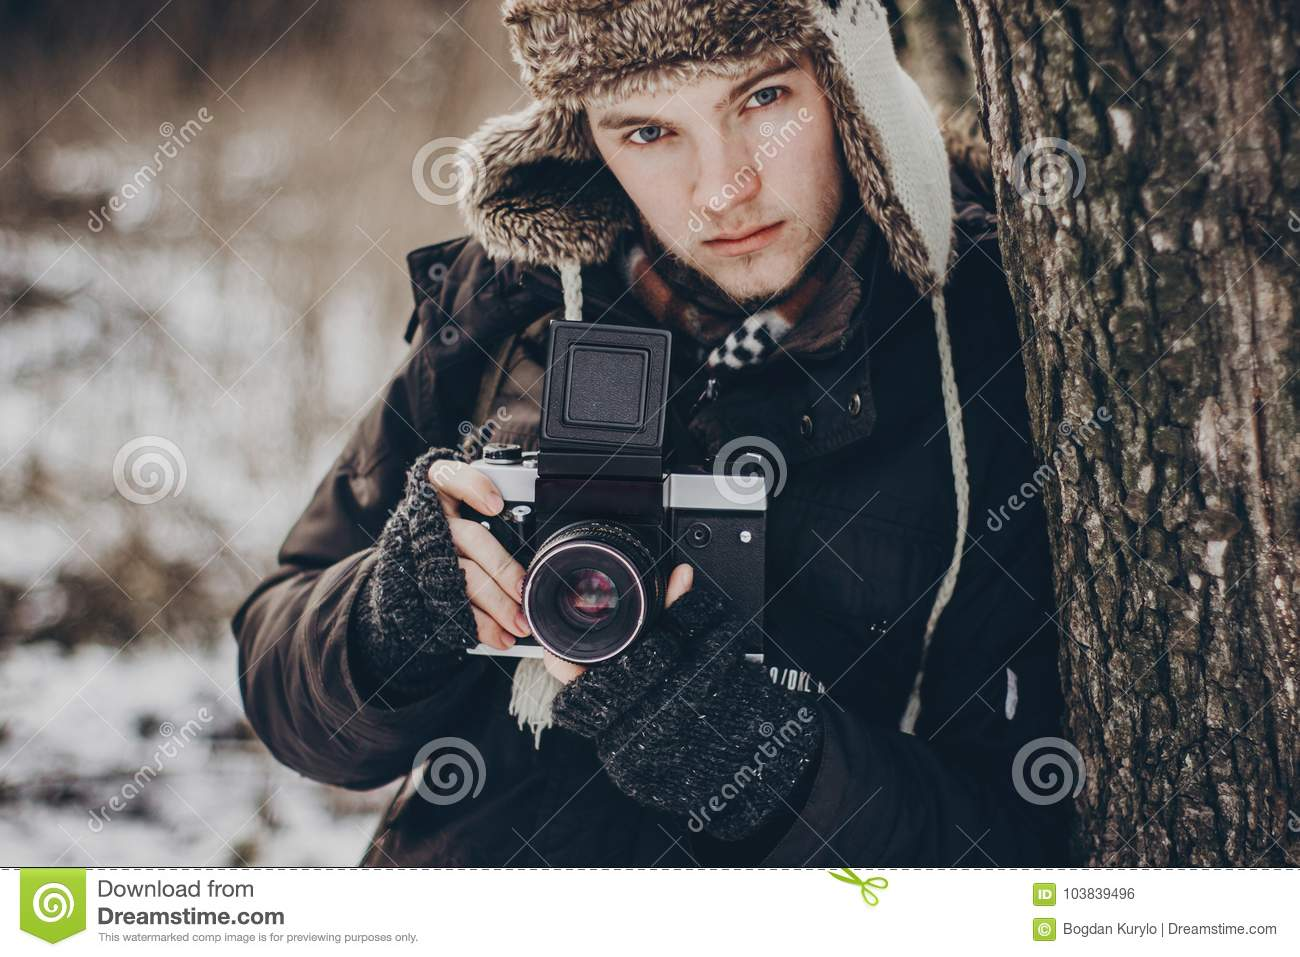 3c1b5110b0f Stylish hipster traveler man with old photo camera exploring in snowy woods in  winter. bearded guy portrait in cold forest. space for text. atmospheric ...